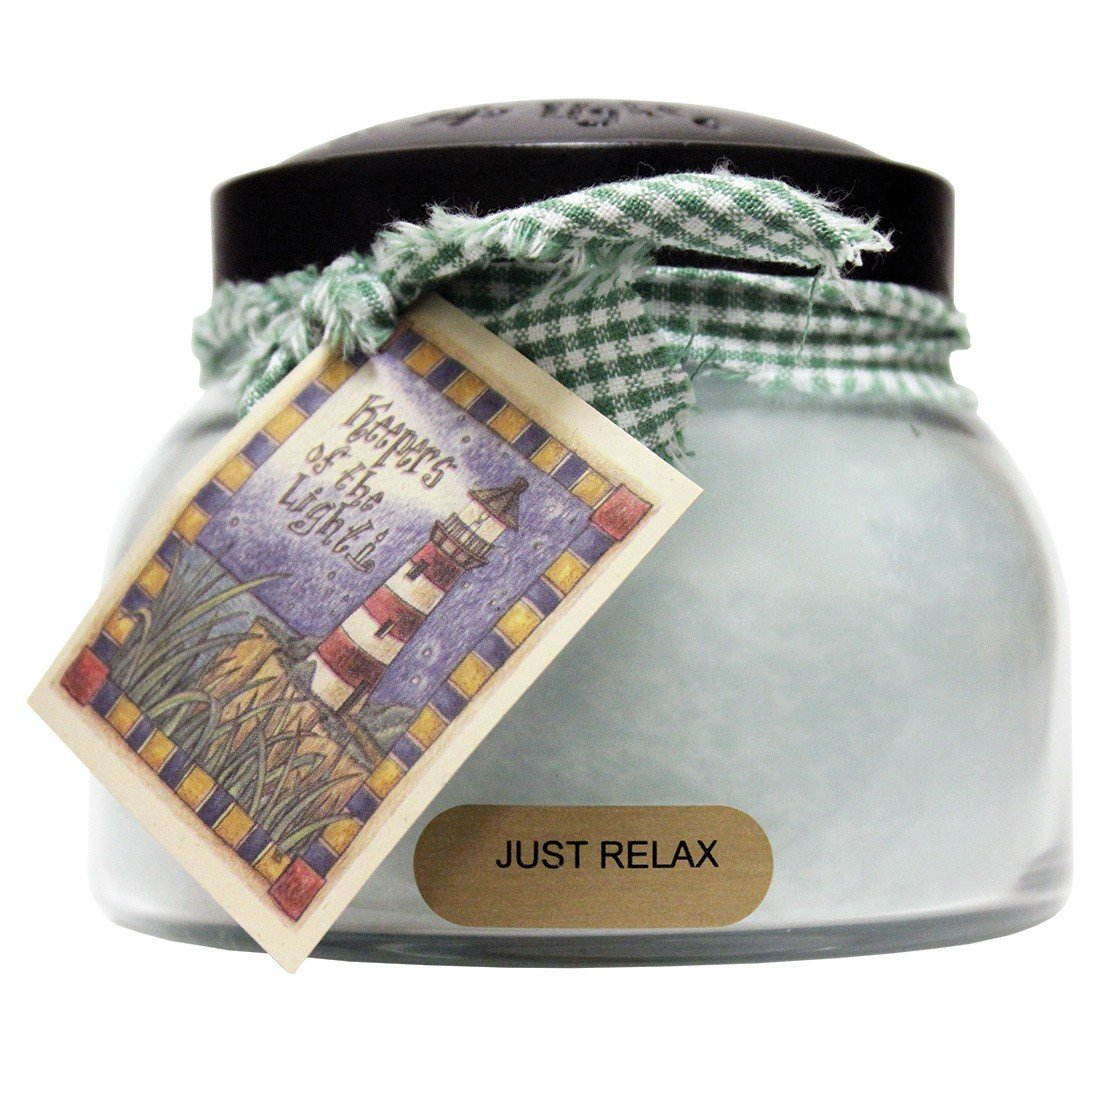 Just Relax Mama Jar Candle 22oz - By A Cheerful Giver